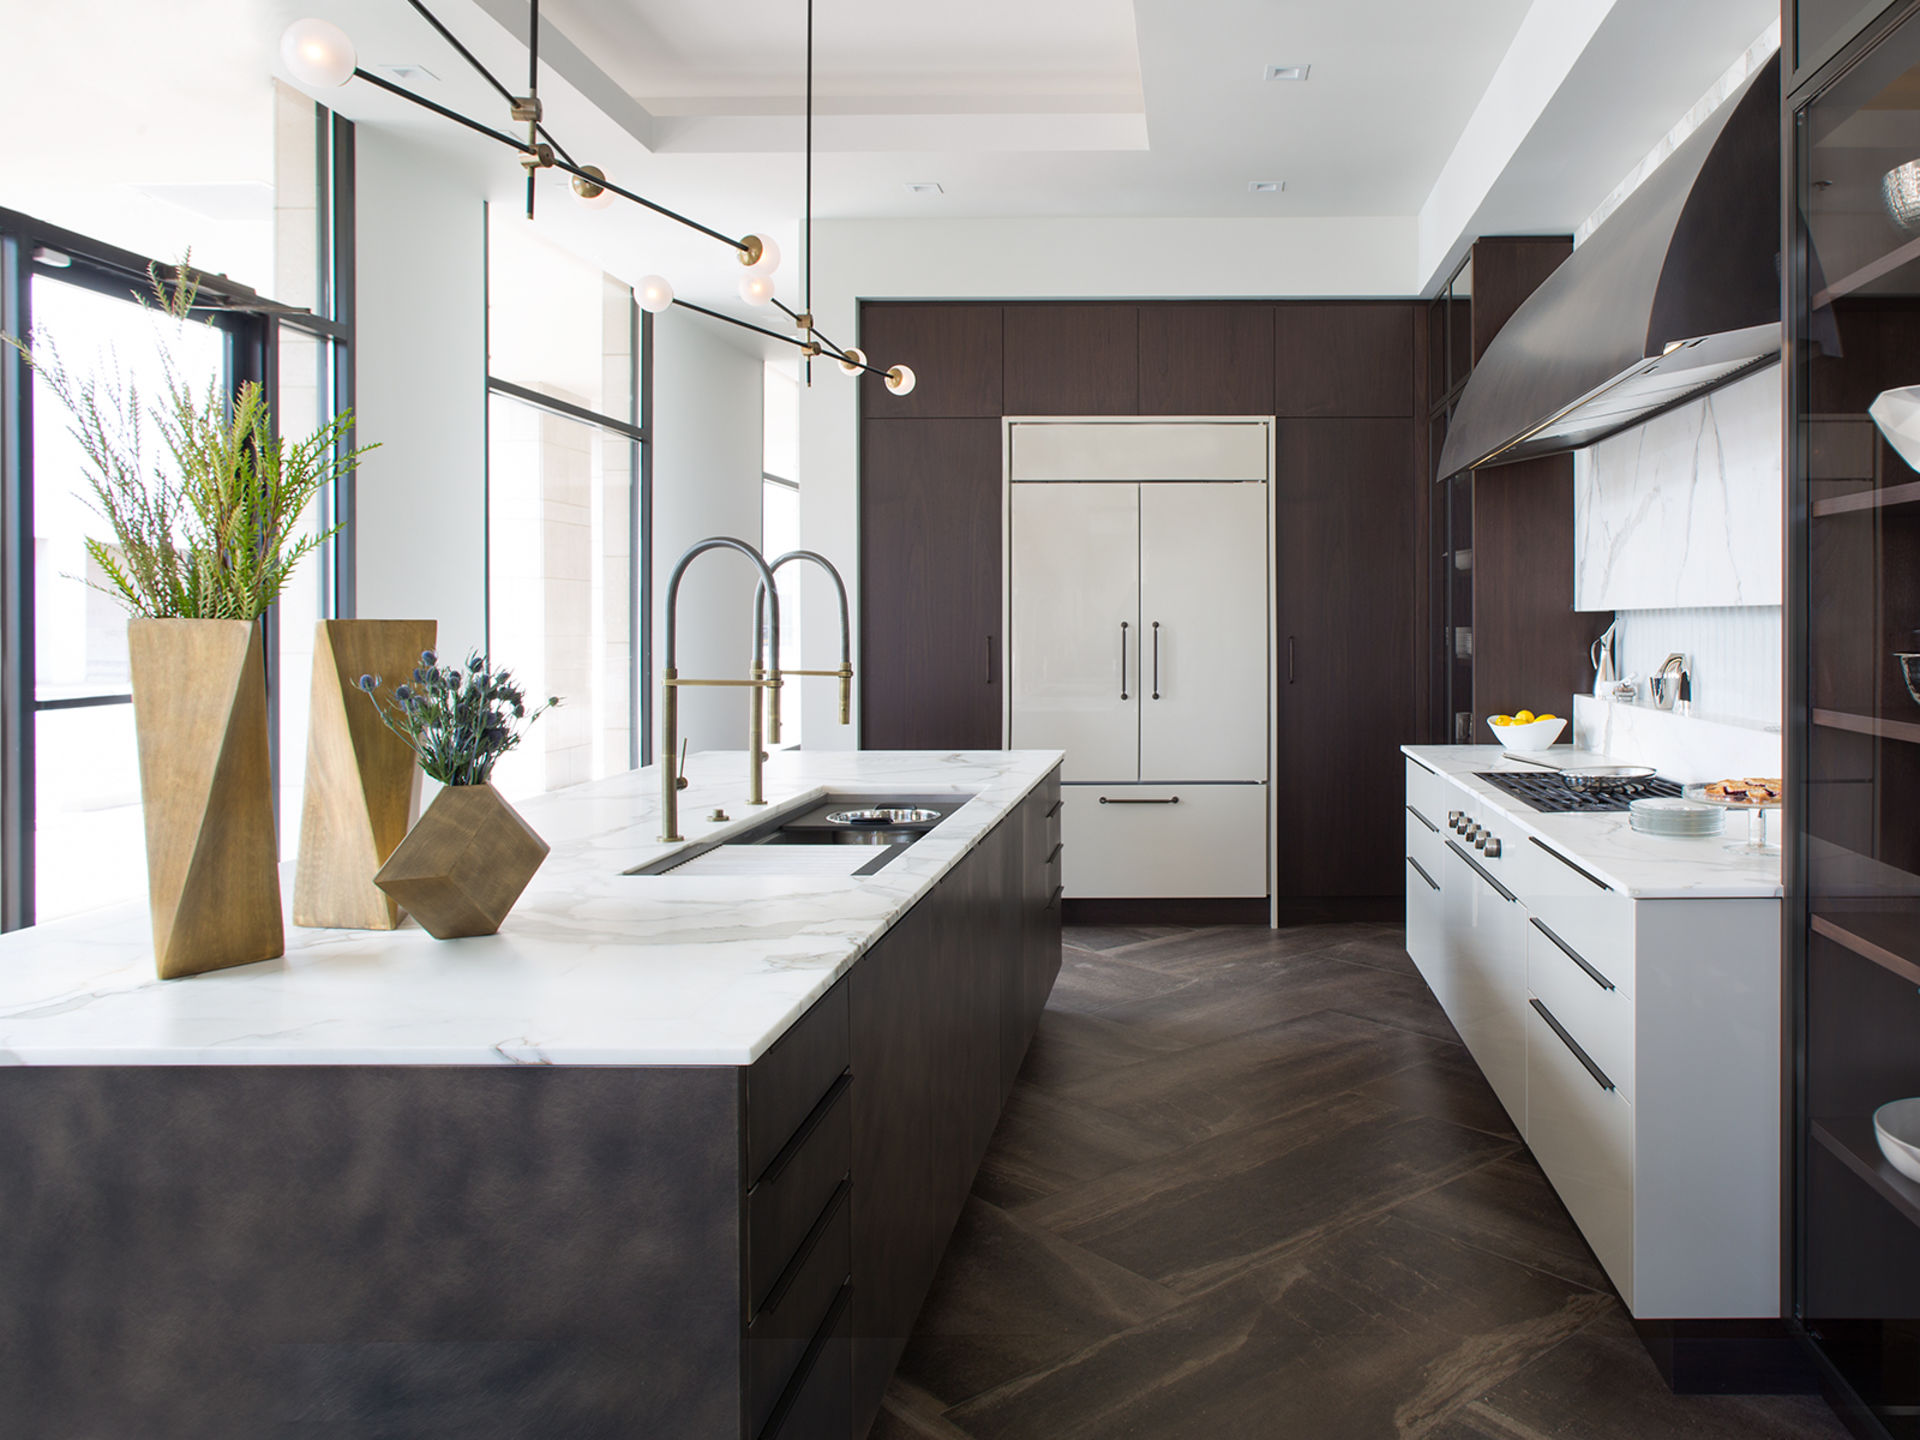 The Best Showroom Inspirations for Home Renovations